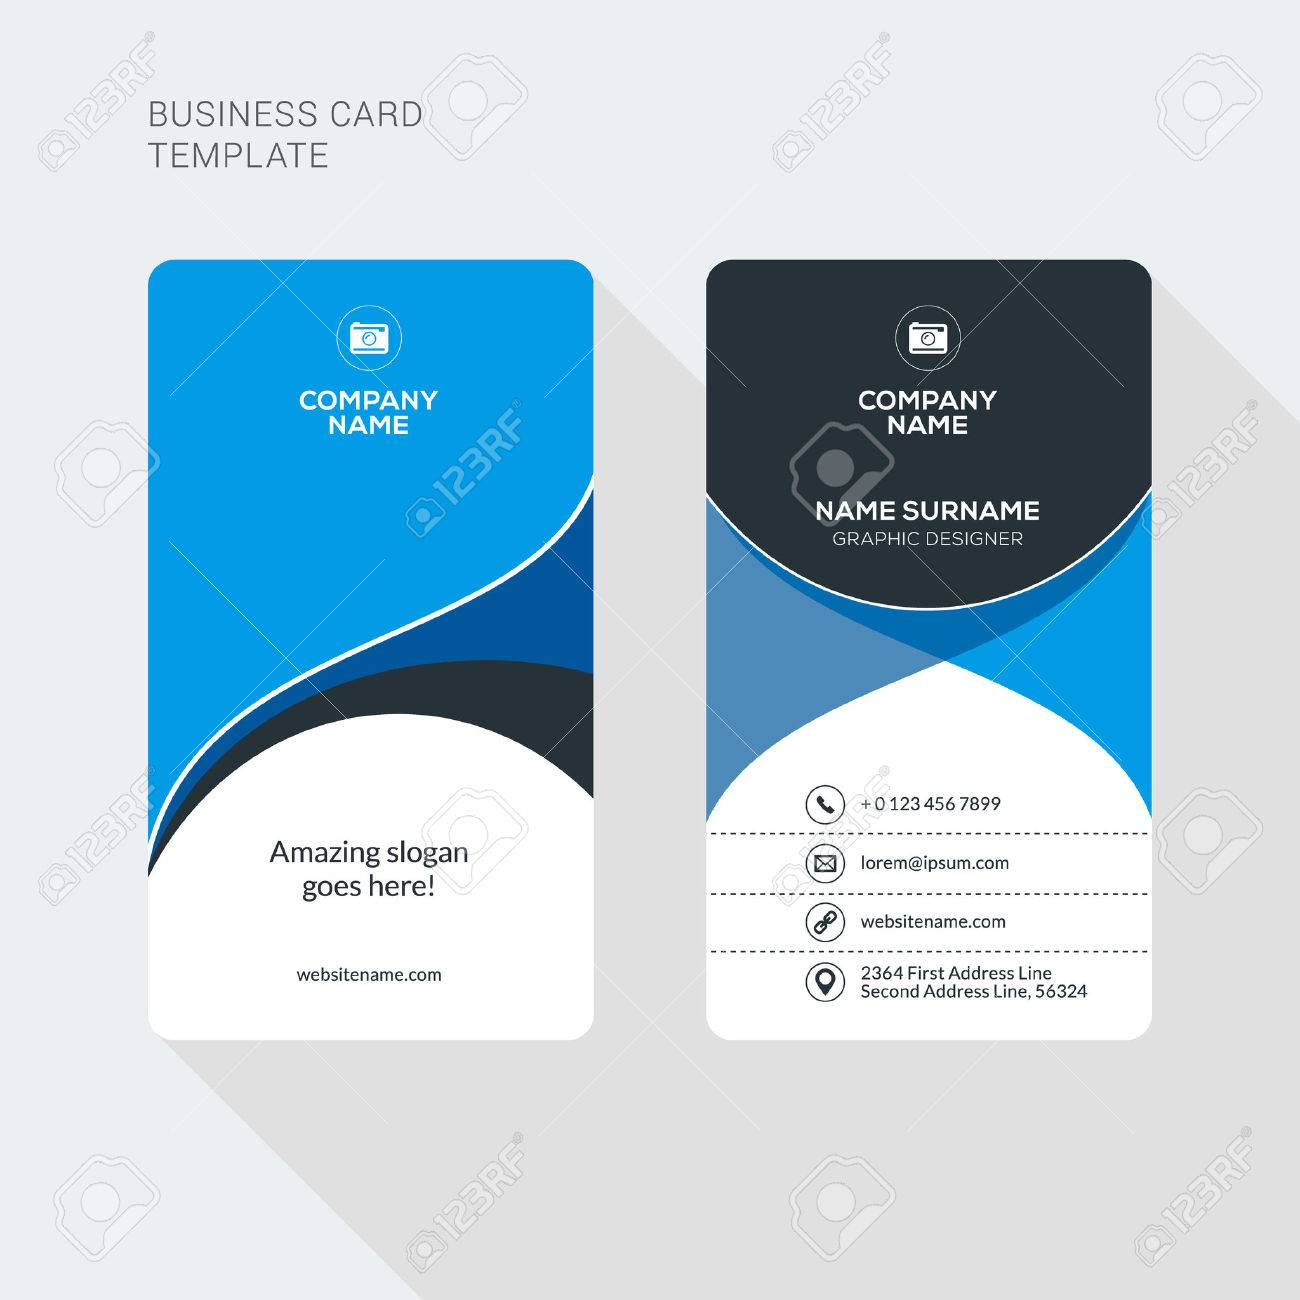 Modern Creative and Clean Two Sided Business Card Template. Flat Style Vector Illustration. Vertical Visiting or Business Card Template. Stationery Design - 52841527